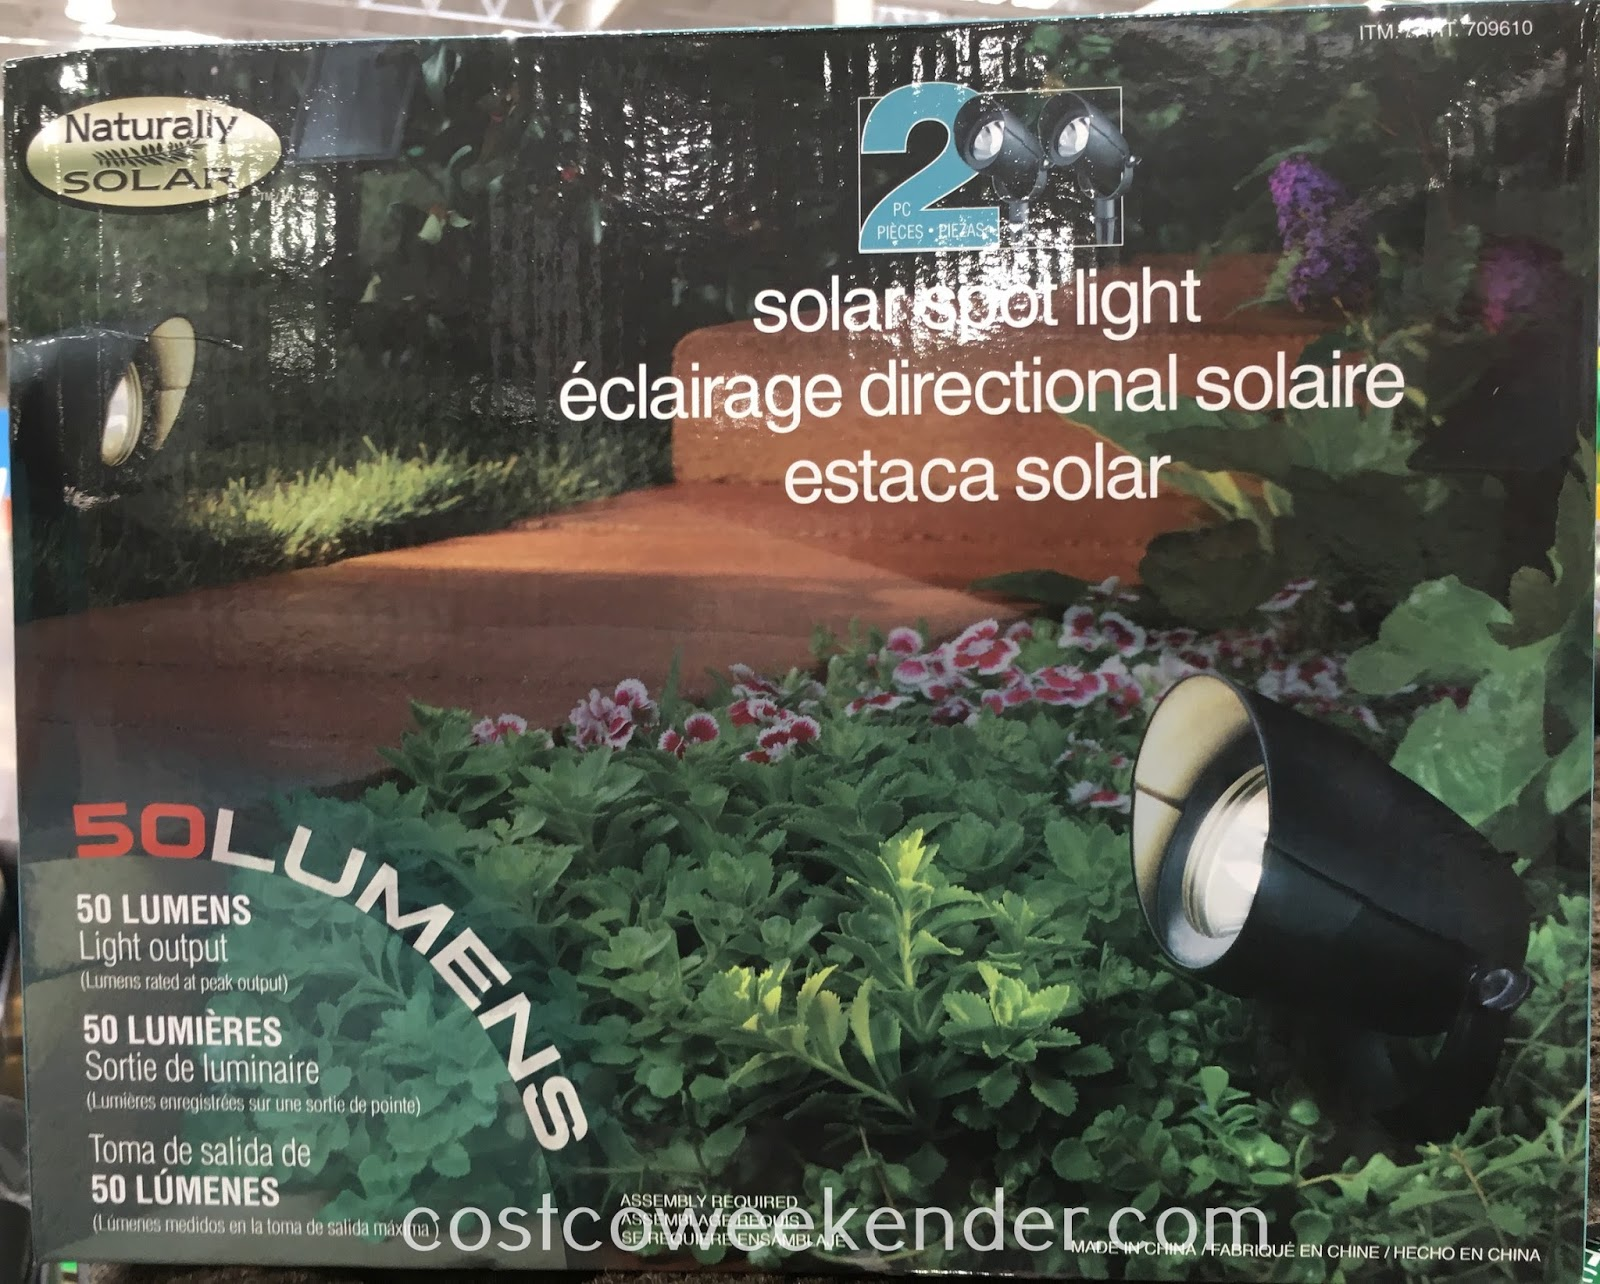 Highlight and illuminate your house with Naturally Solar Spot Lights